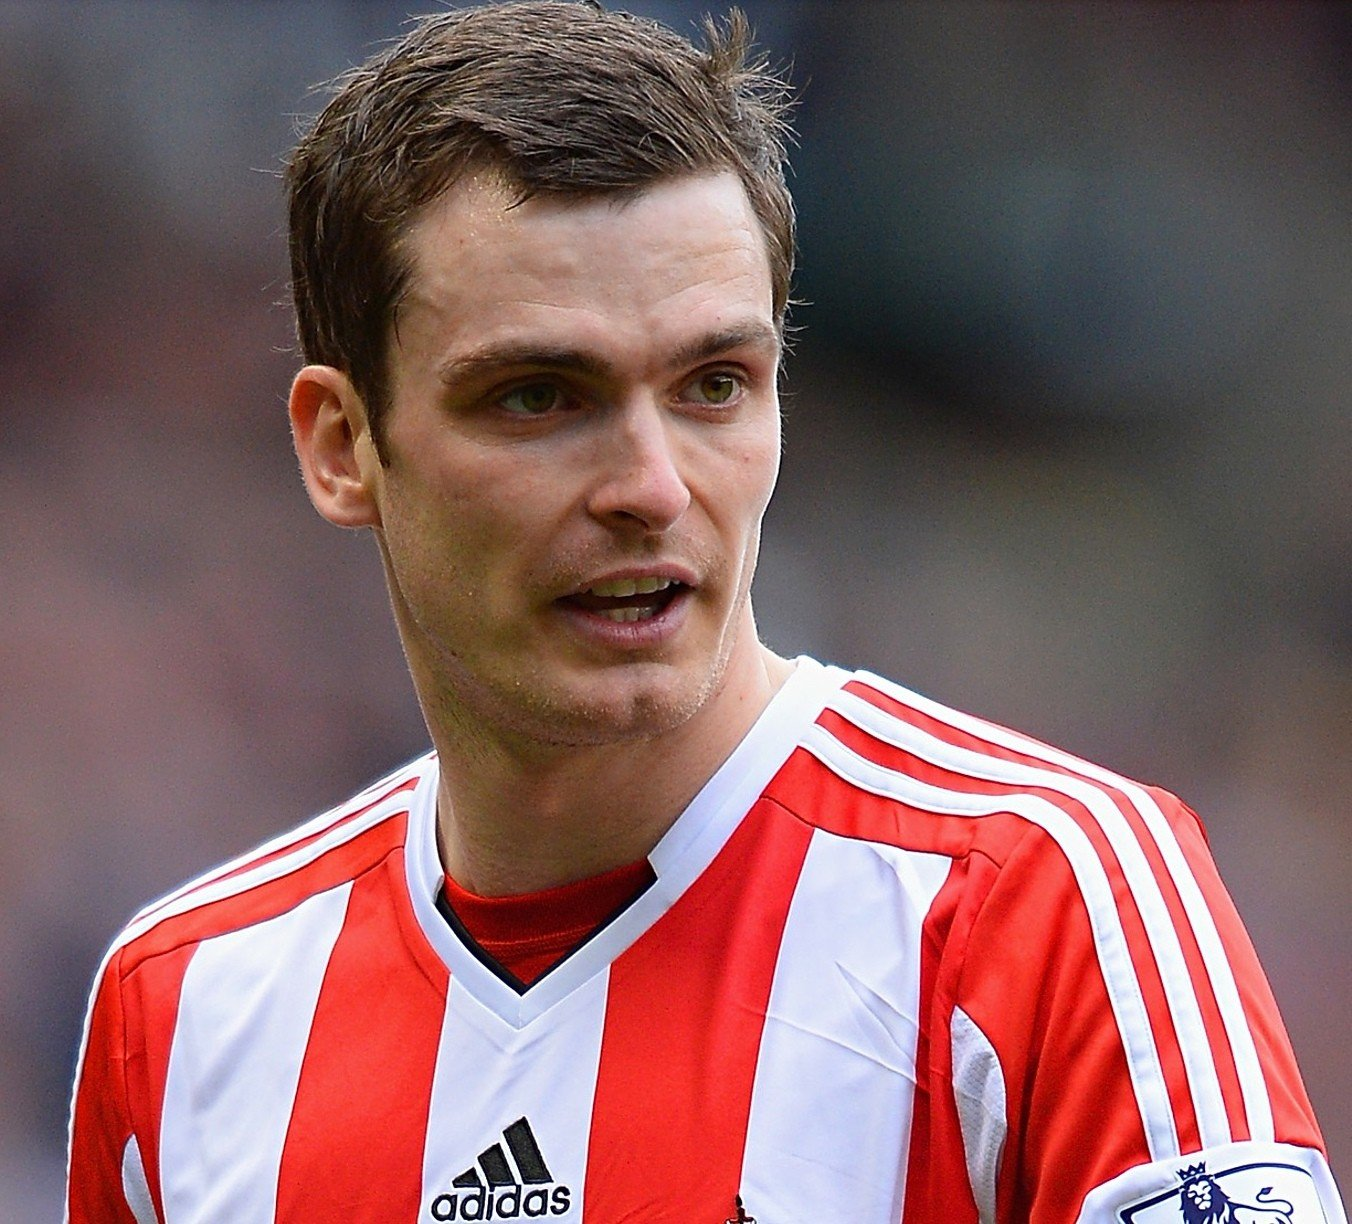 5 Adam Johnson ACTUAL SPORT 10 Sports Stars Who Committed Terrible Crimes